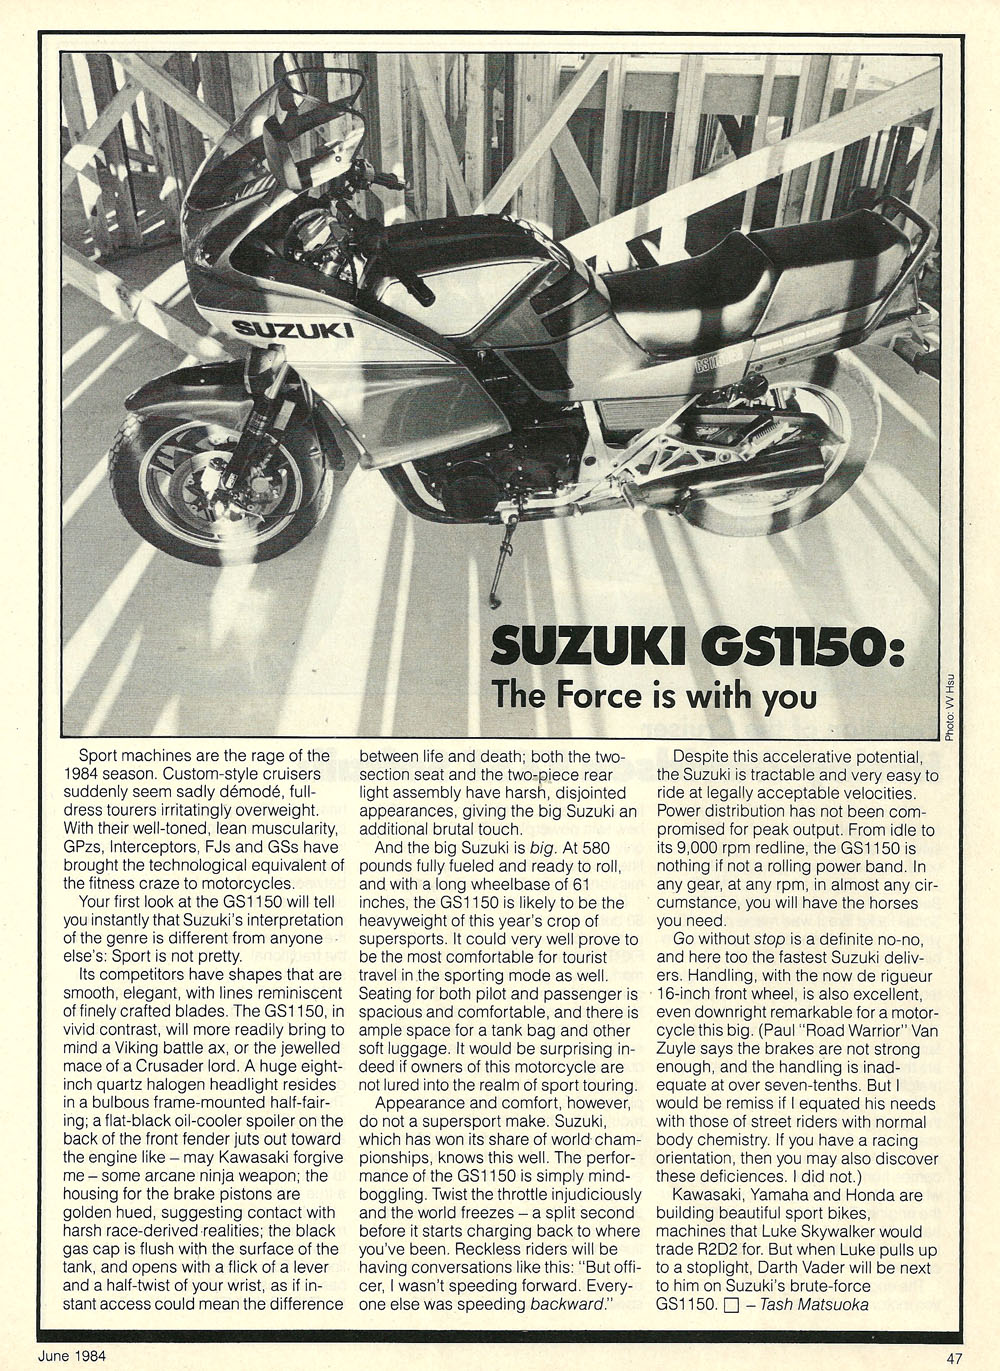 1984 bmw r80rt vs harley fxrt vs suzuki gs1100 road test 06.jpg